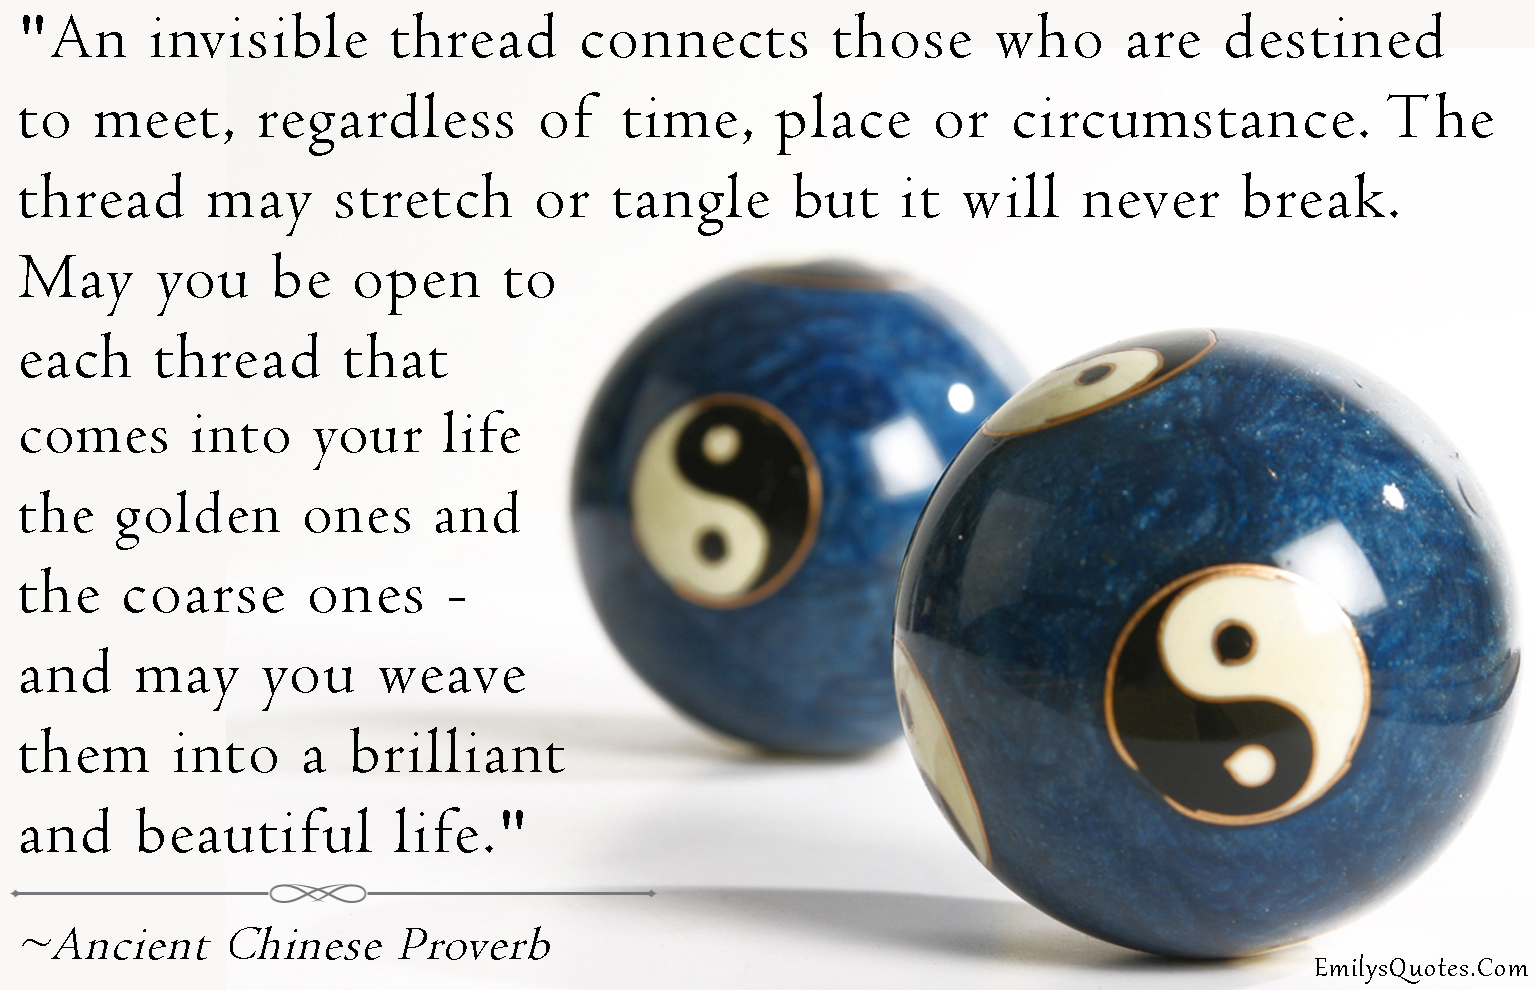 An invisible thread connects those who are destined to meet, regardless of time, place or circumstance.  The thread may stretch or tangle but it will never break. May you be open to each thread that comes into your life, the golden ones and coarse ones- and may you weave them into a brilliant and beautiful life. - 10 Chinese Proverbs that Will Upgrade Your Perspective